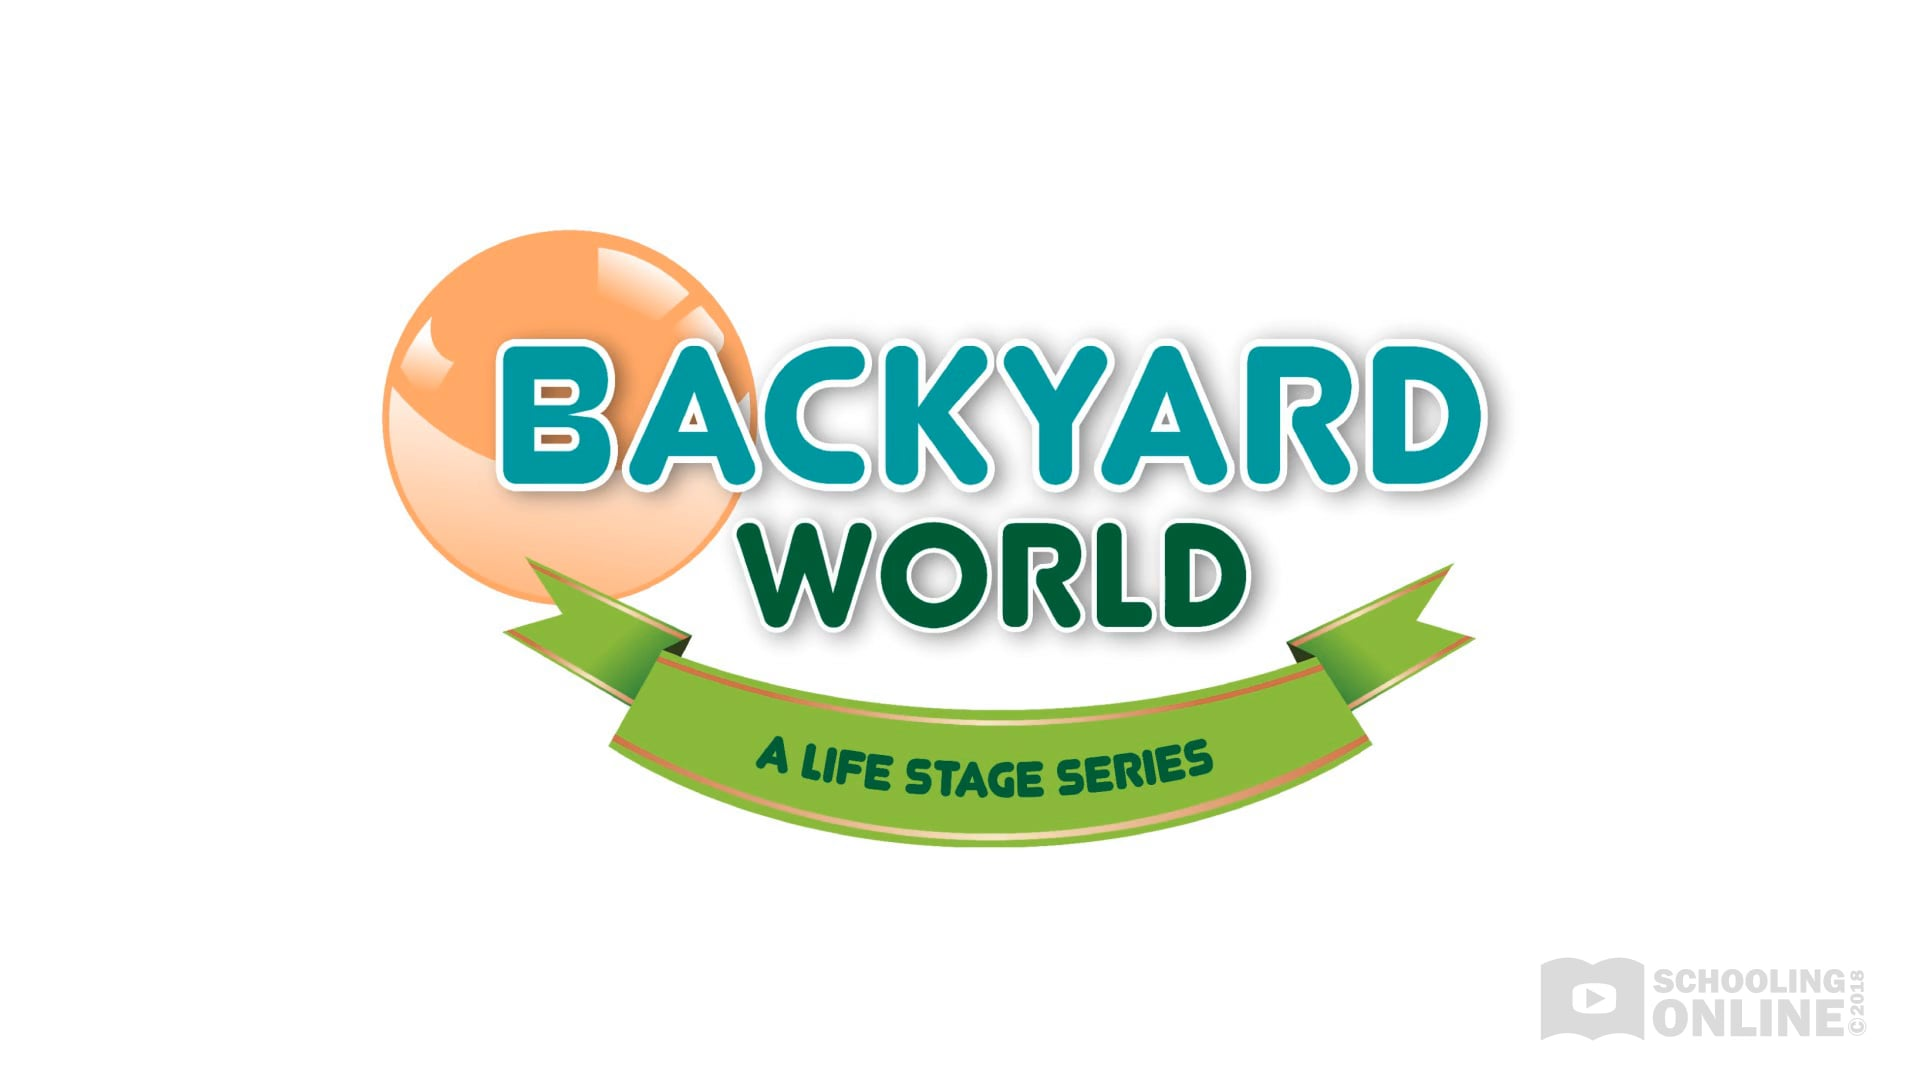 Backyard World - The Life Stage Series